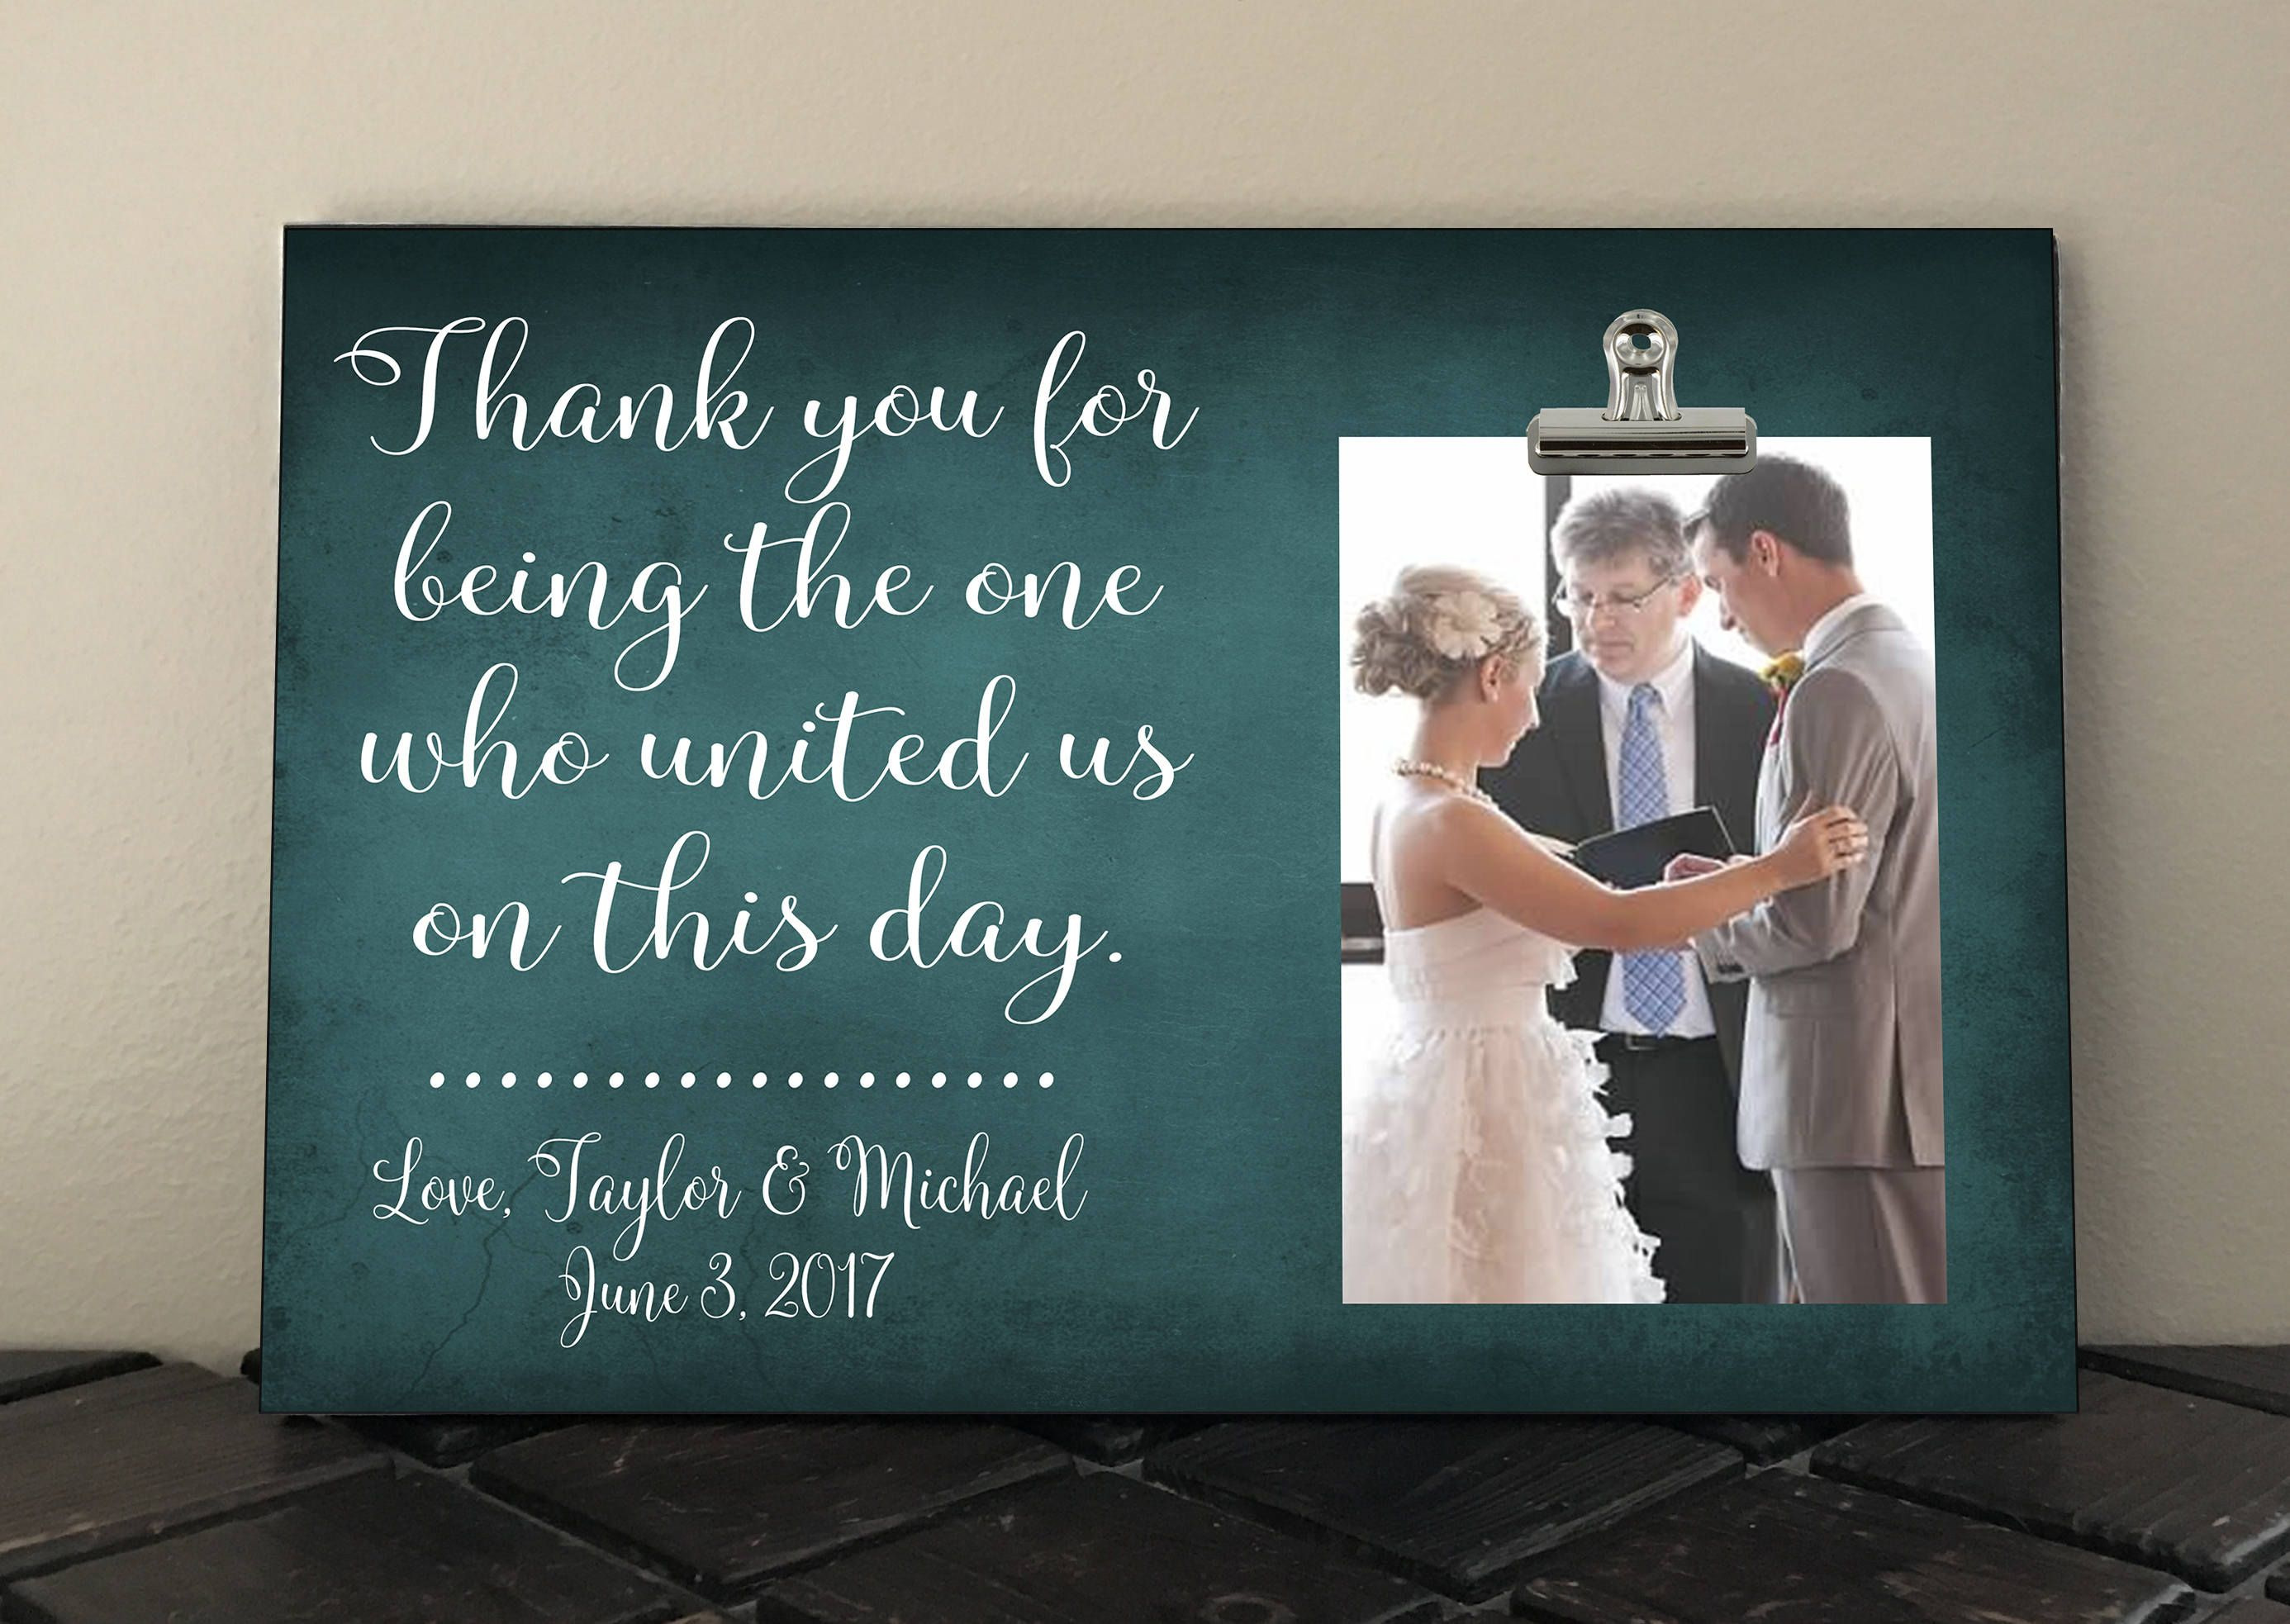 WEDDING OFFICIANT GIFT Free Design Proof And Personalization Thank You For Being The One Who United Us On This Day Wedding Gift